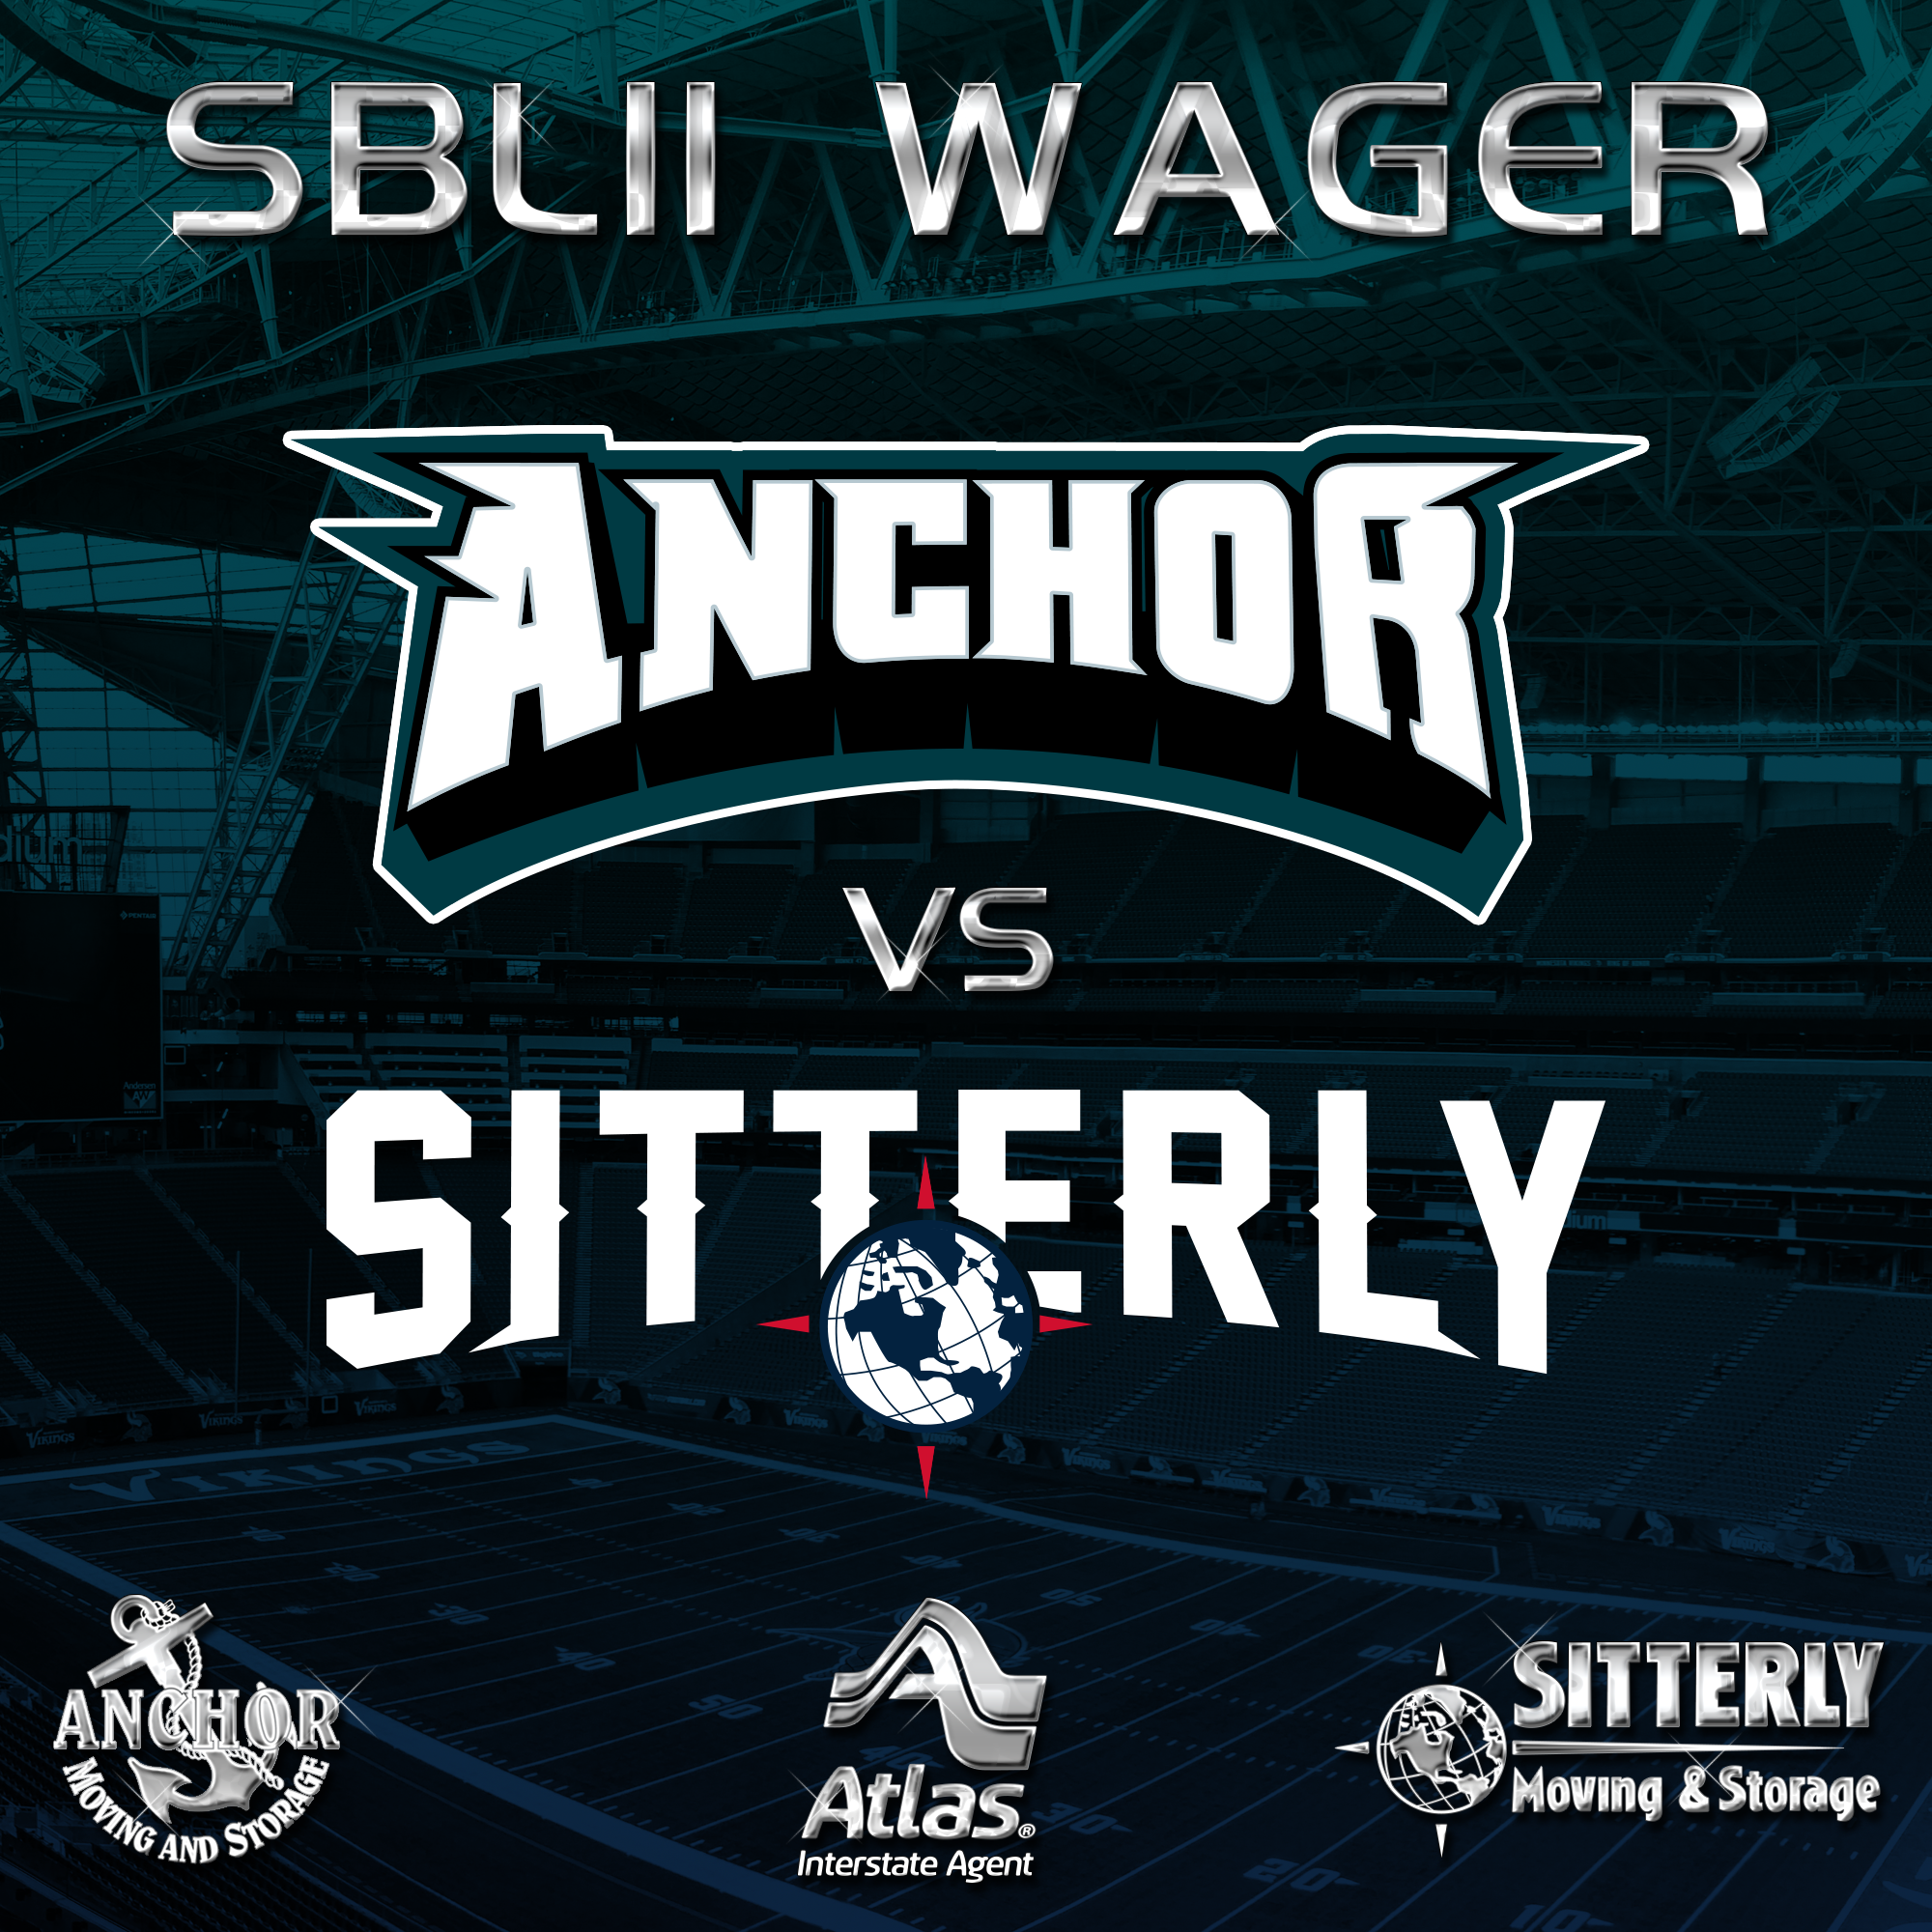 4a28d-superbowllii522018sitterlymovers.pngsuperbowllii522018sitterlymovers.png